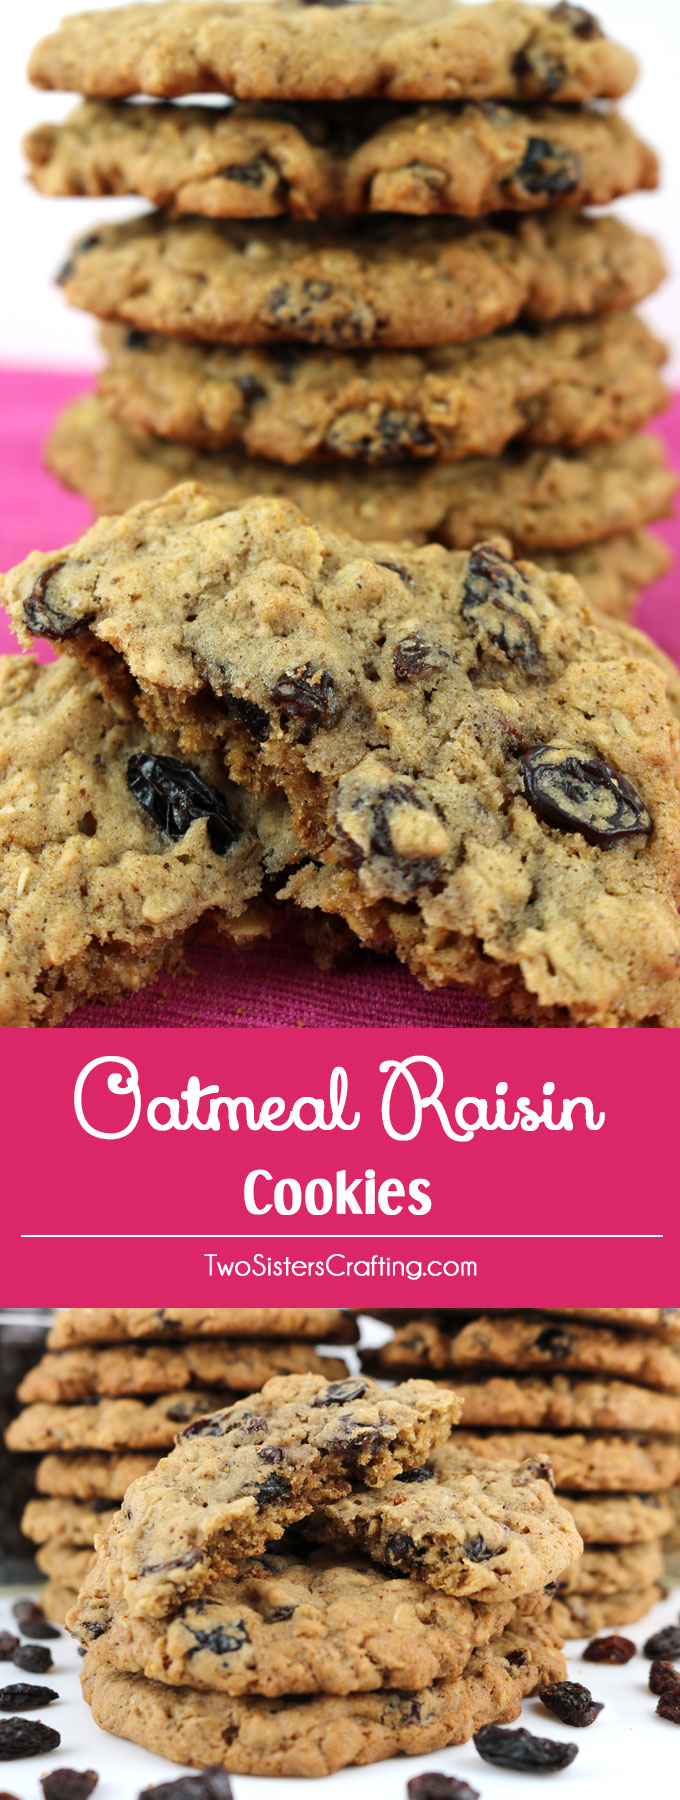 Oatmeal Raisin Cookies - a classic cookie recipe that makes a delicious, soft and chewy Oatmeal Cookie. This is a great oatmeal raisin cookie recipe that you'll find yourself going back to again and again.These easy to make cookies are the homemade cookies you've been looking for. Pin this delicious cookie recipe for later and follow us for more yummy cookie ideas.